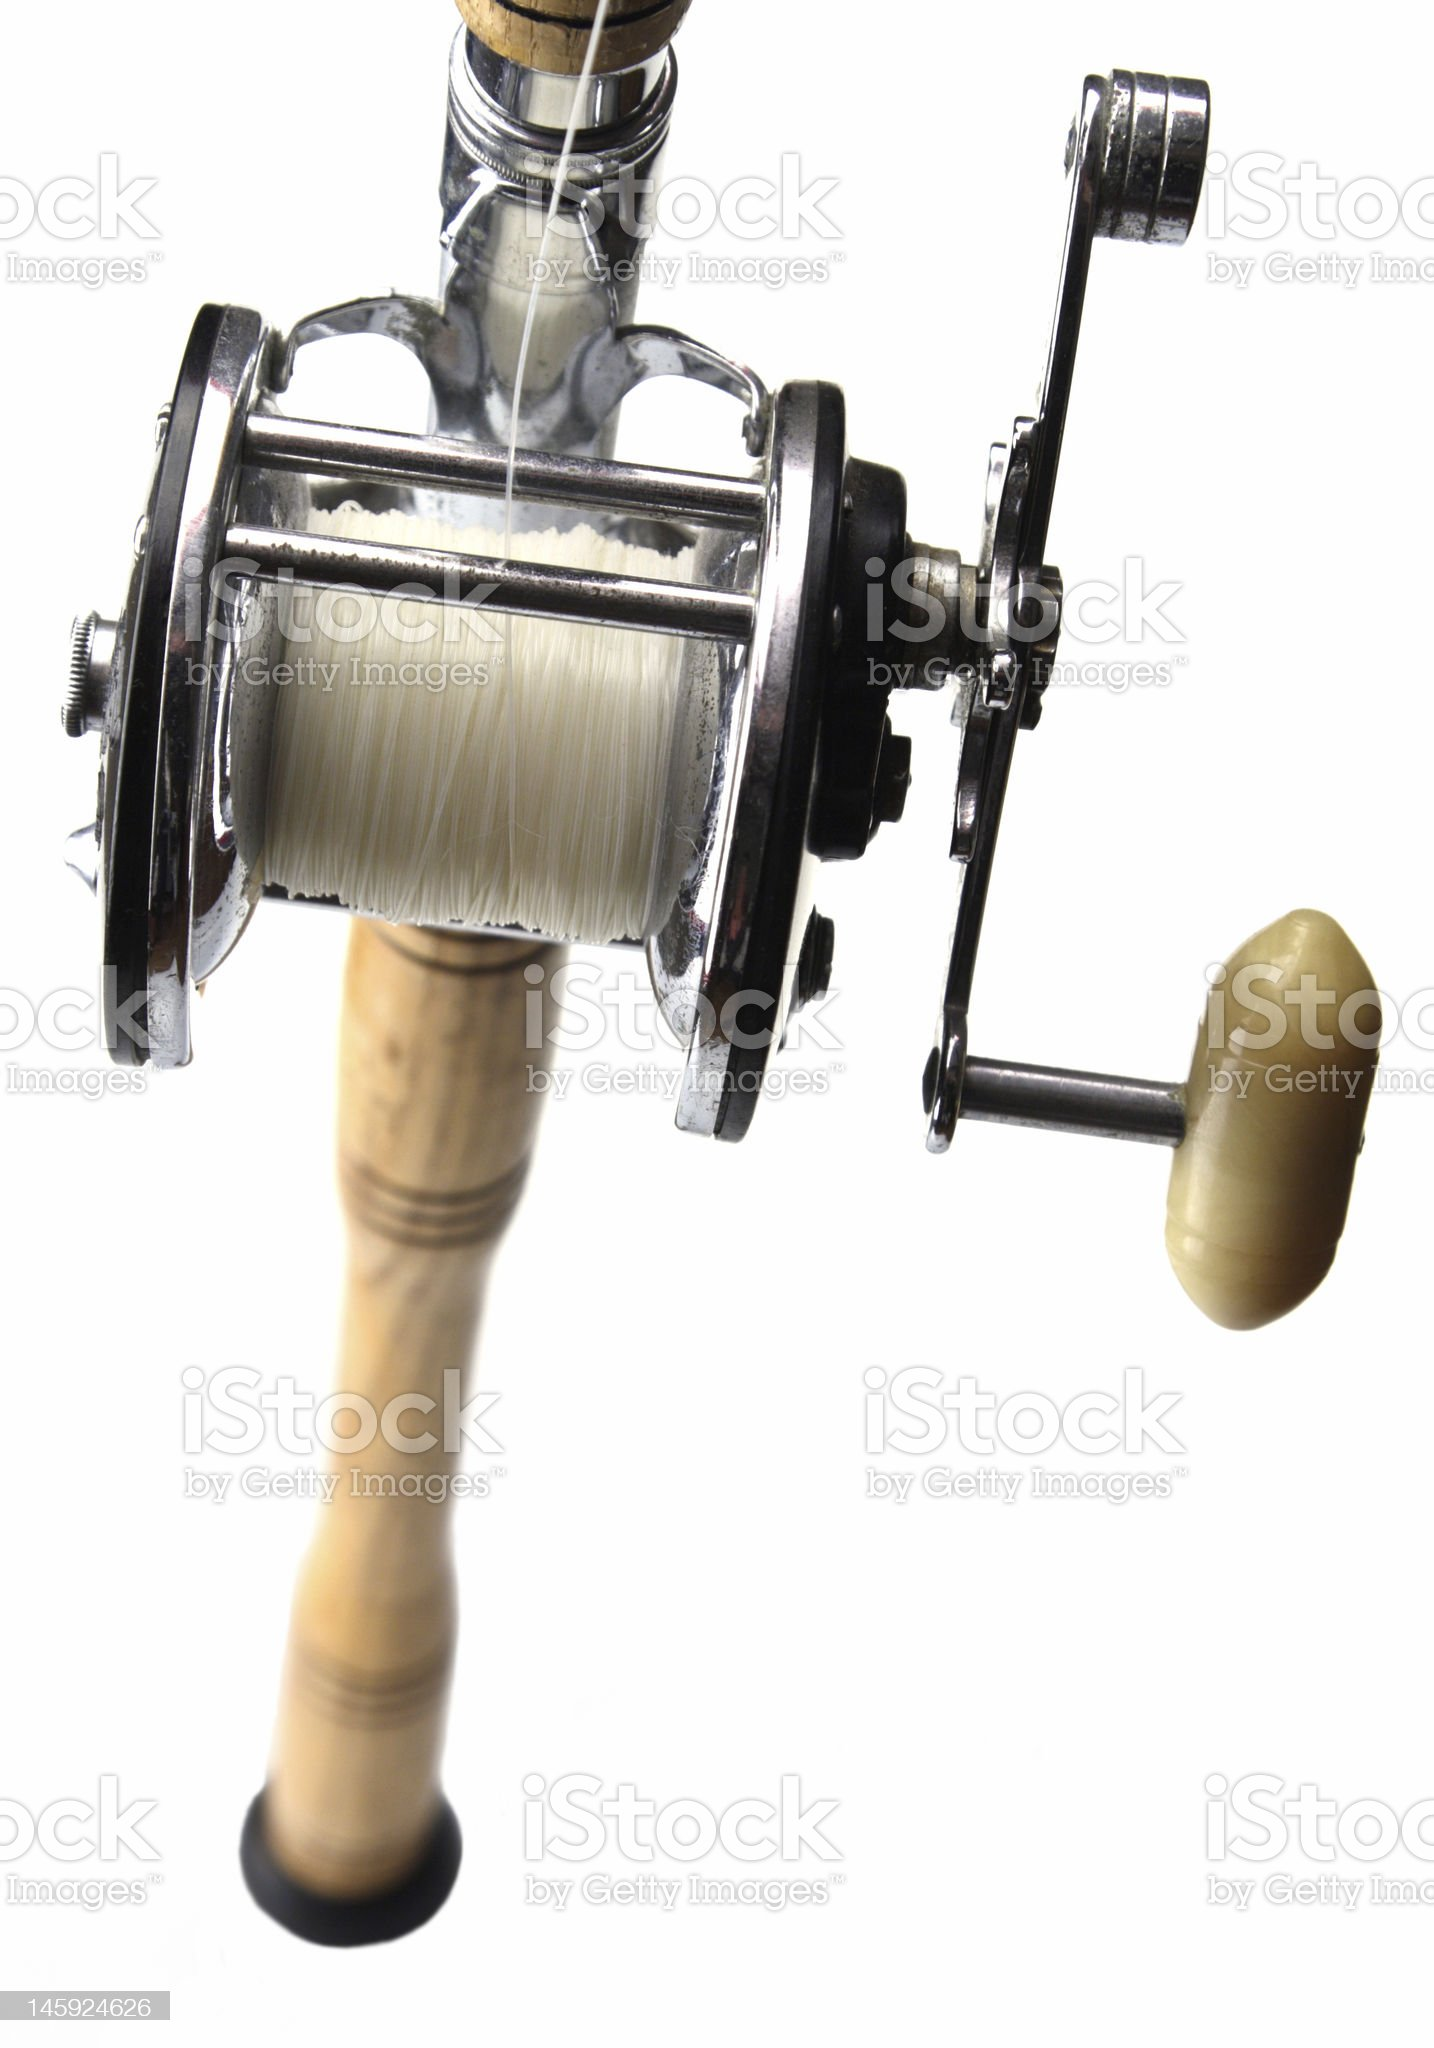 Rod and Reel royalty-free stock photo